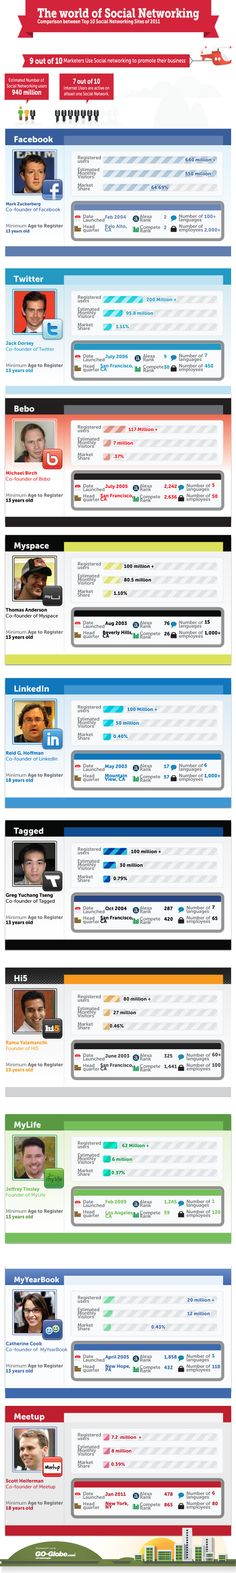 The world of social networking Comparison between top 10 social networking sites of 2011